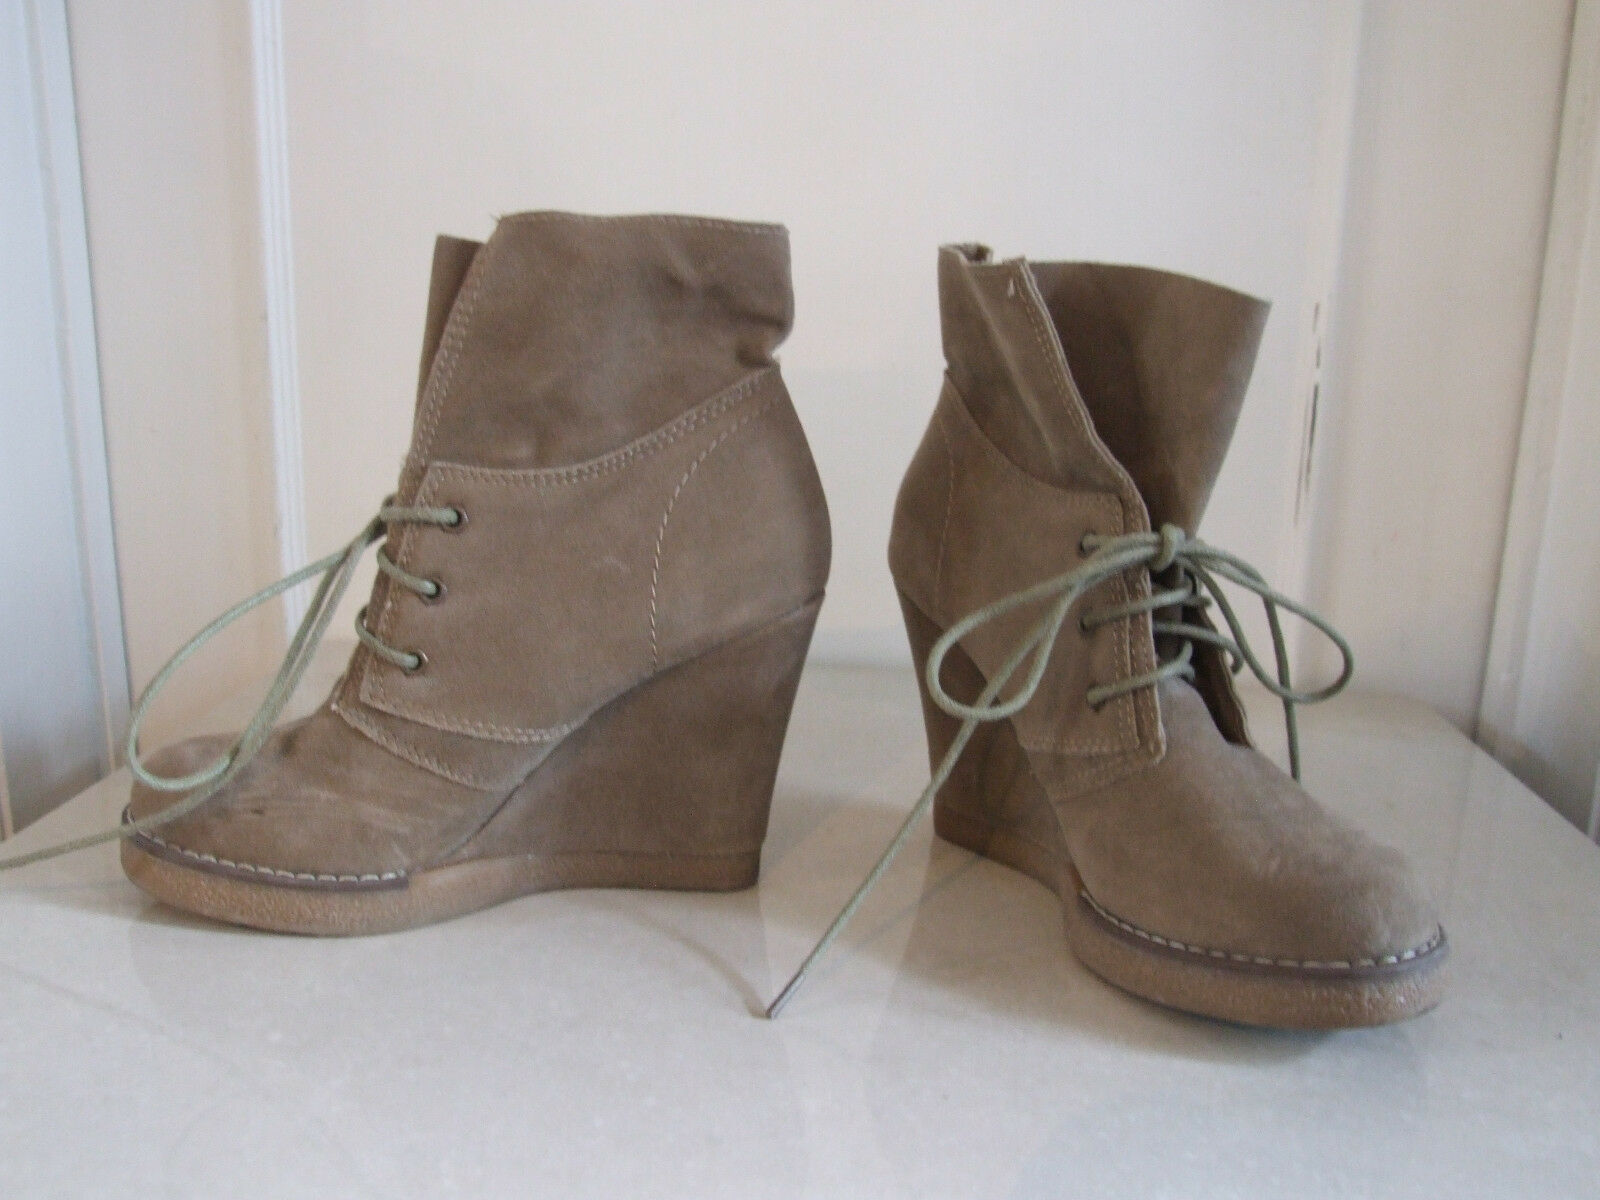 Gorgeous Beige Suede Wedge Heel Lace-Up Ankle Boots shoes UK Size 5   EU Size 38